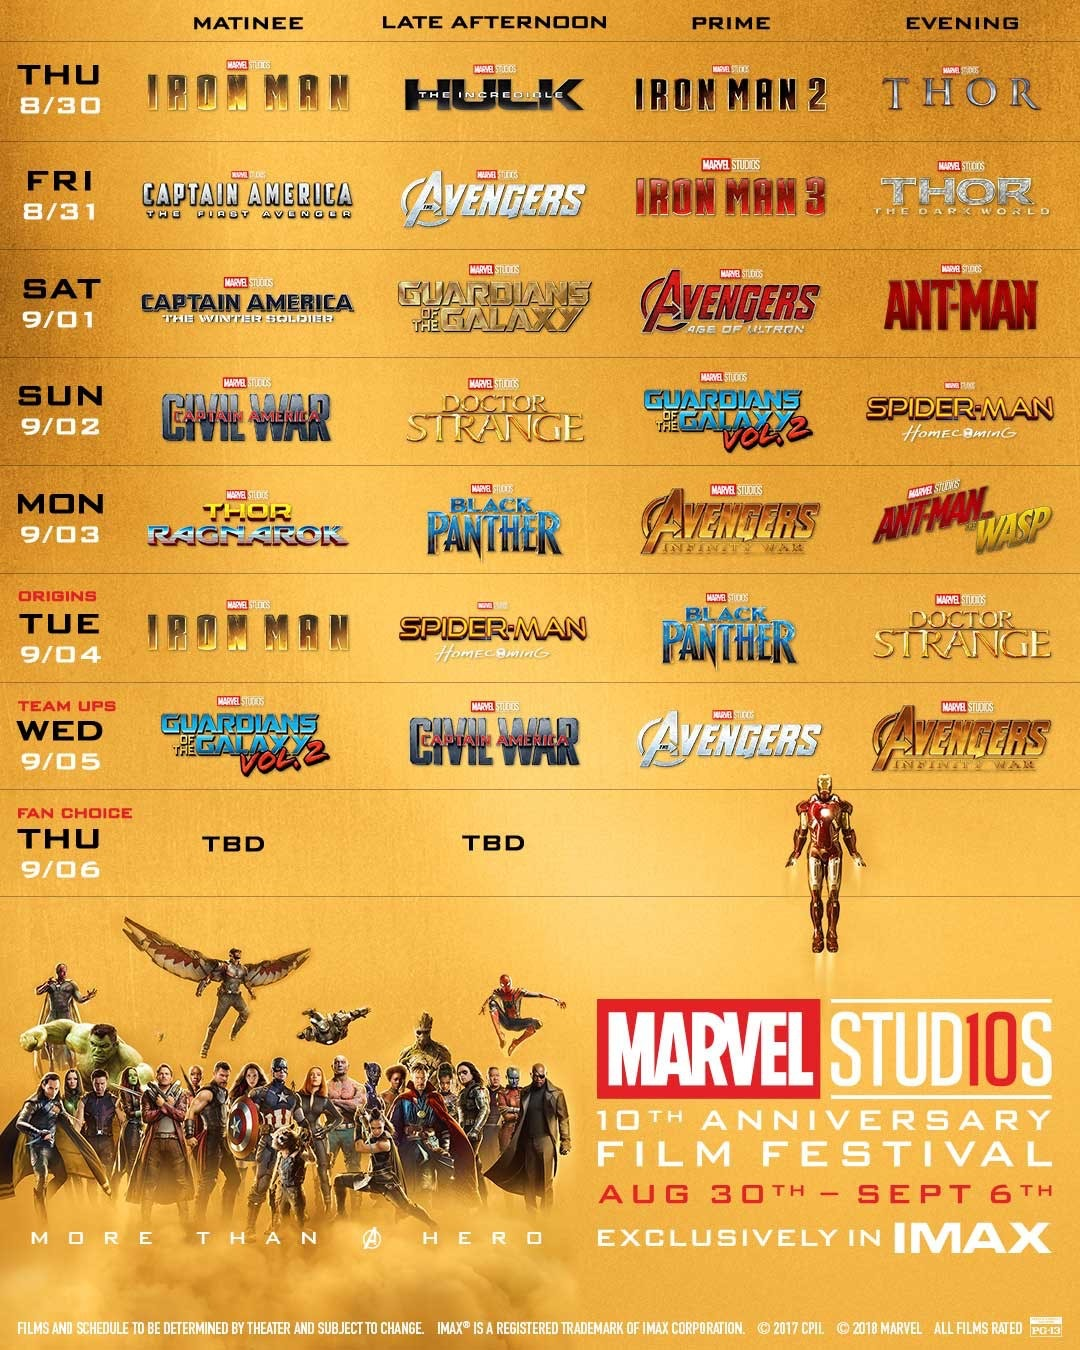 You can watch every Marvel movie in Imax this month